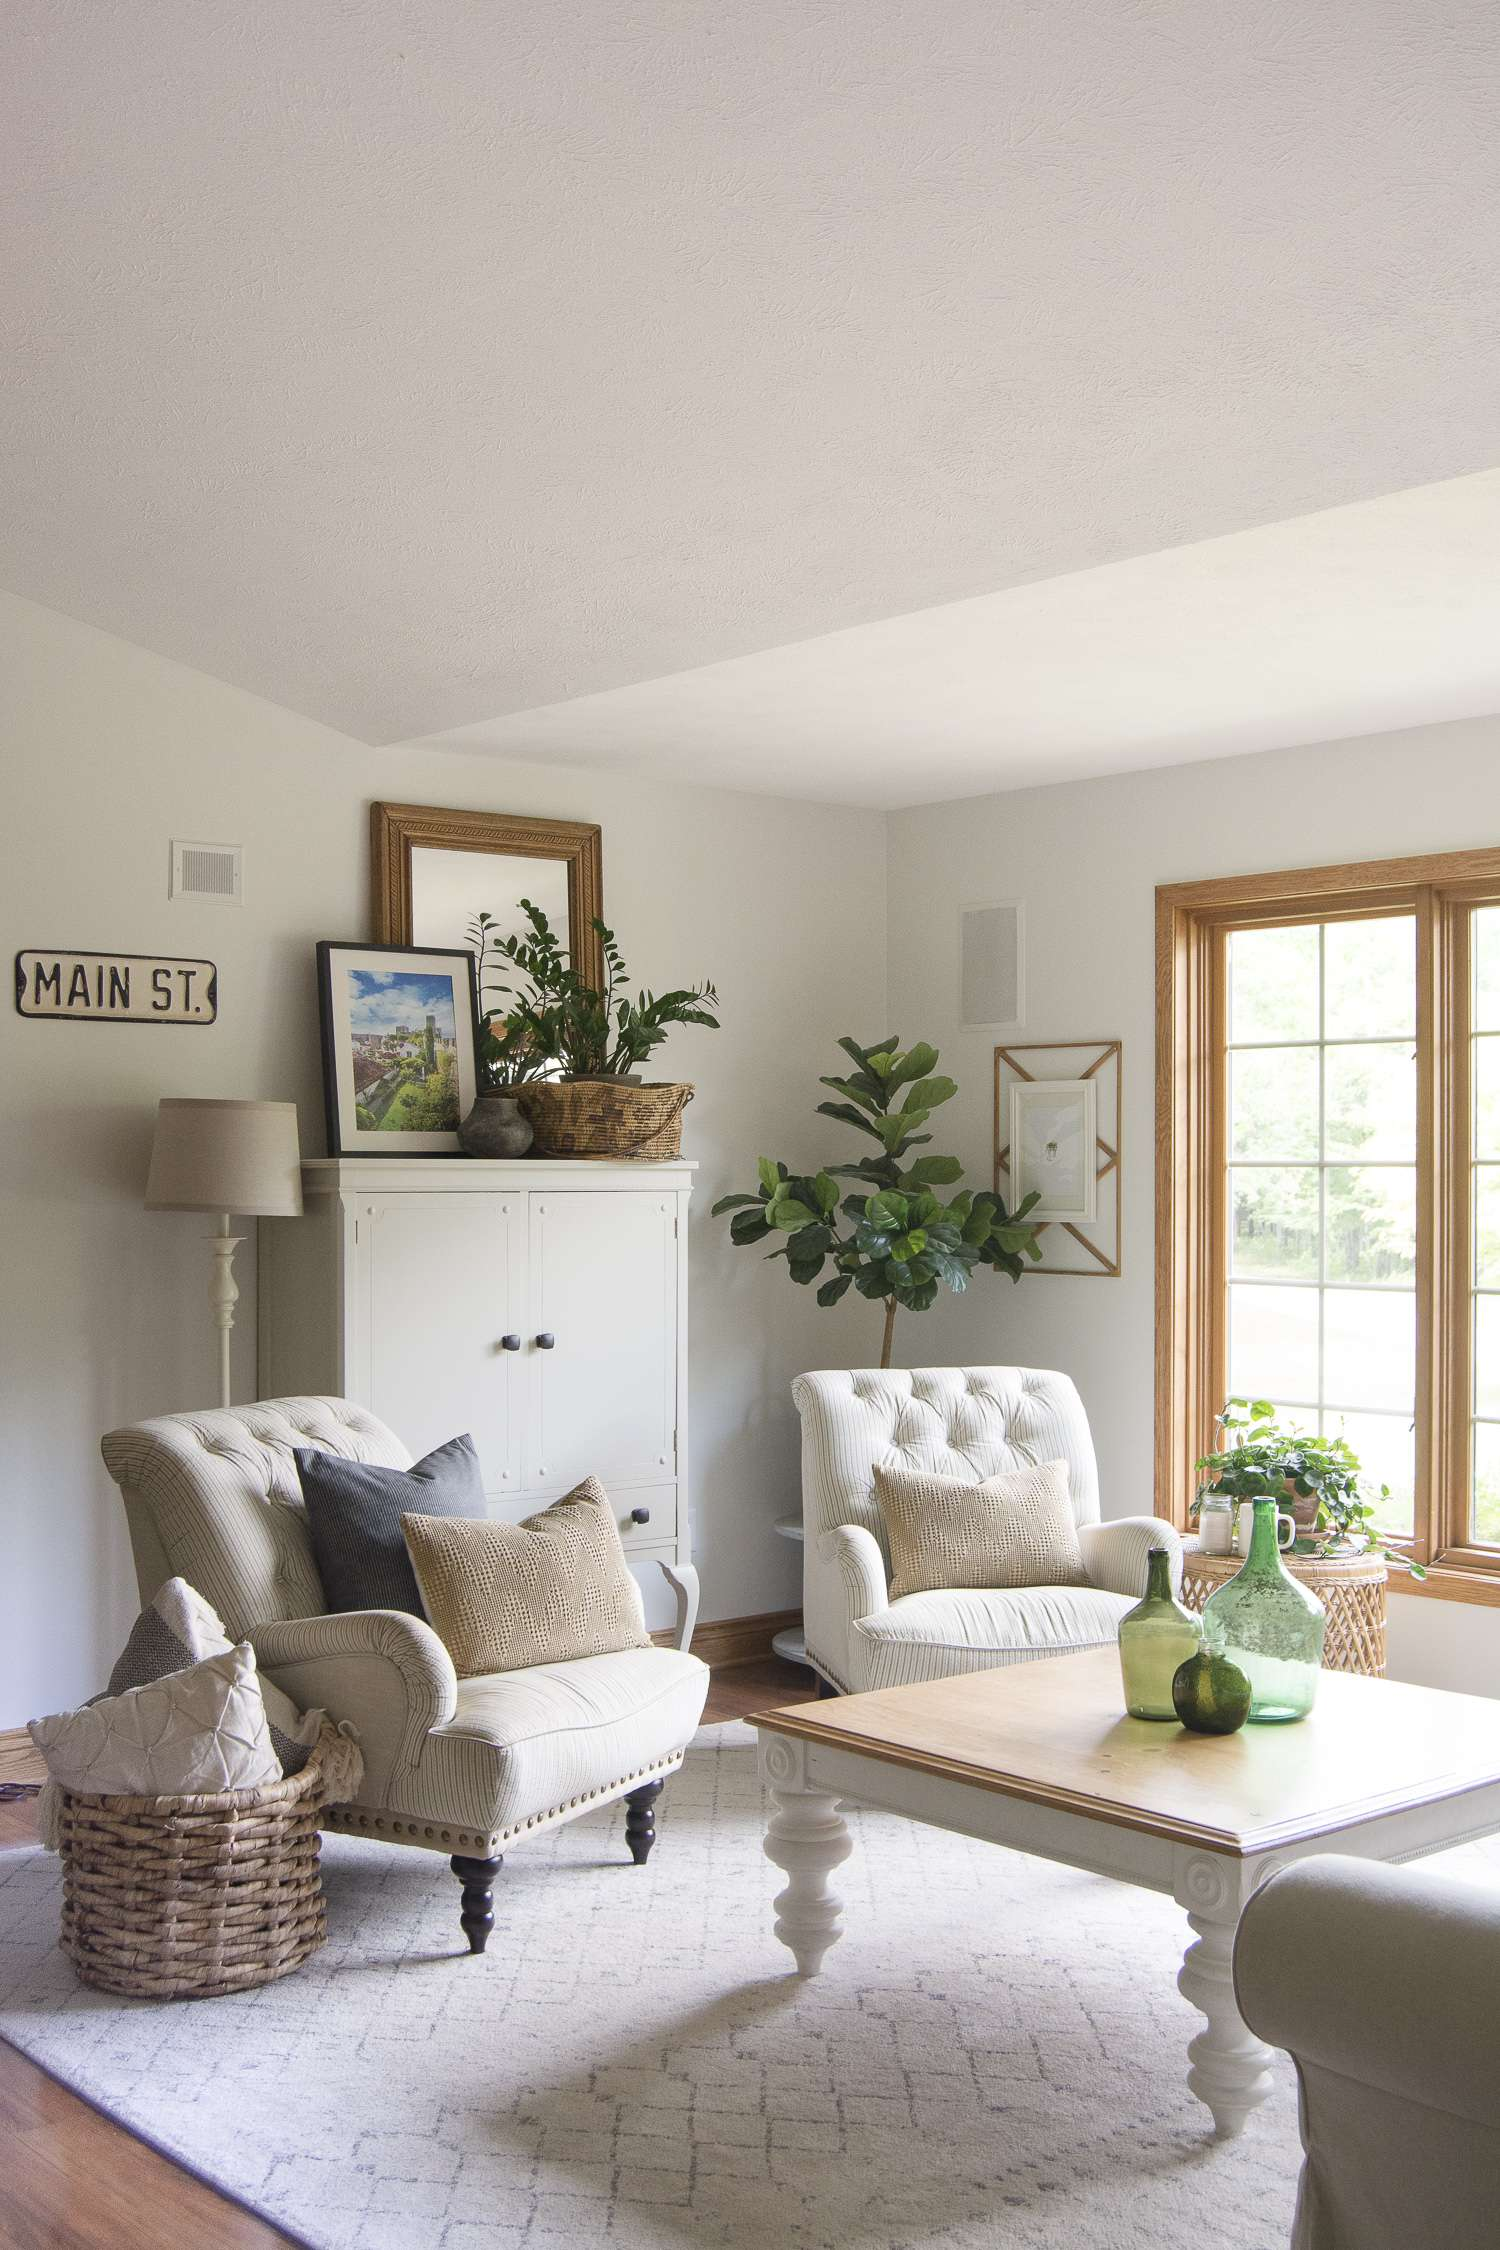 How I transformed a dated living room into a vintage farmhouse decor haven. Come see the before and after for this breathtaking living room update.